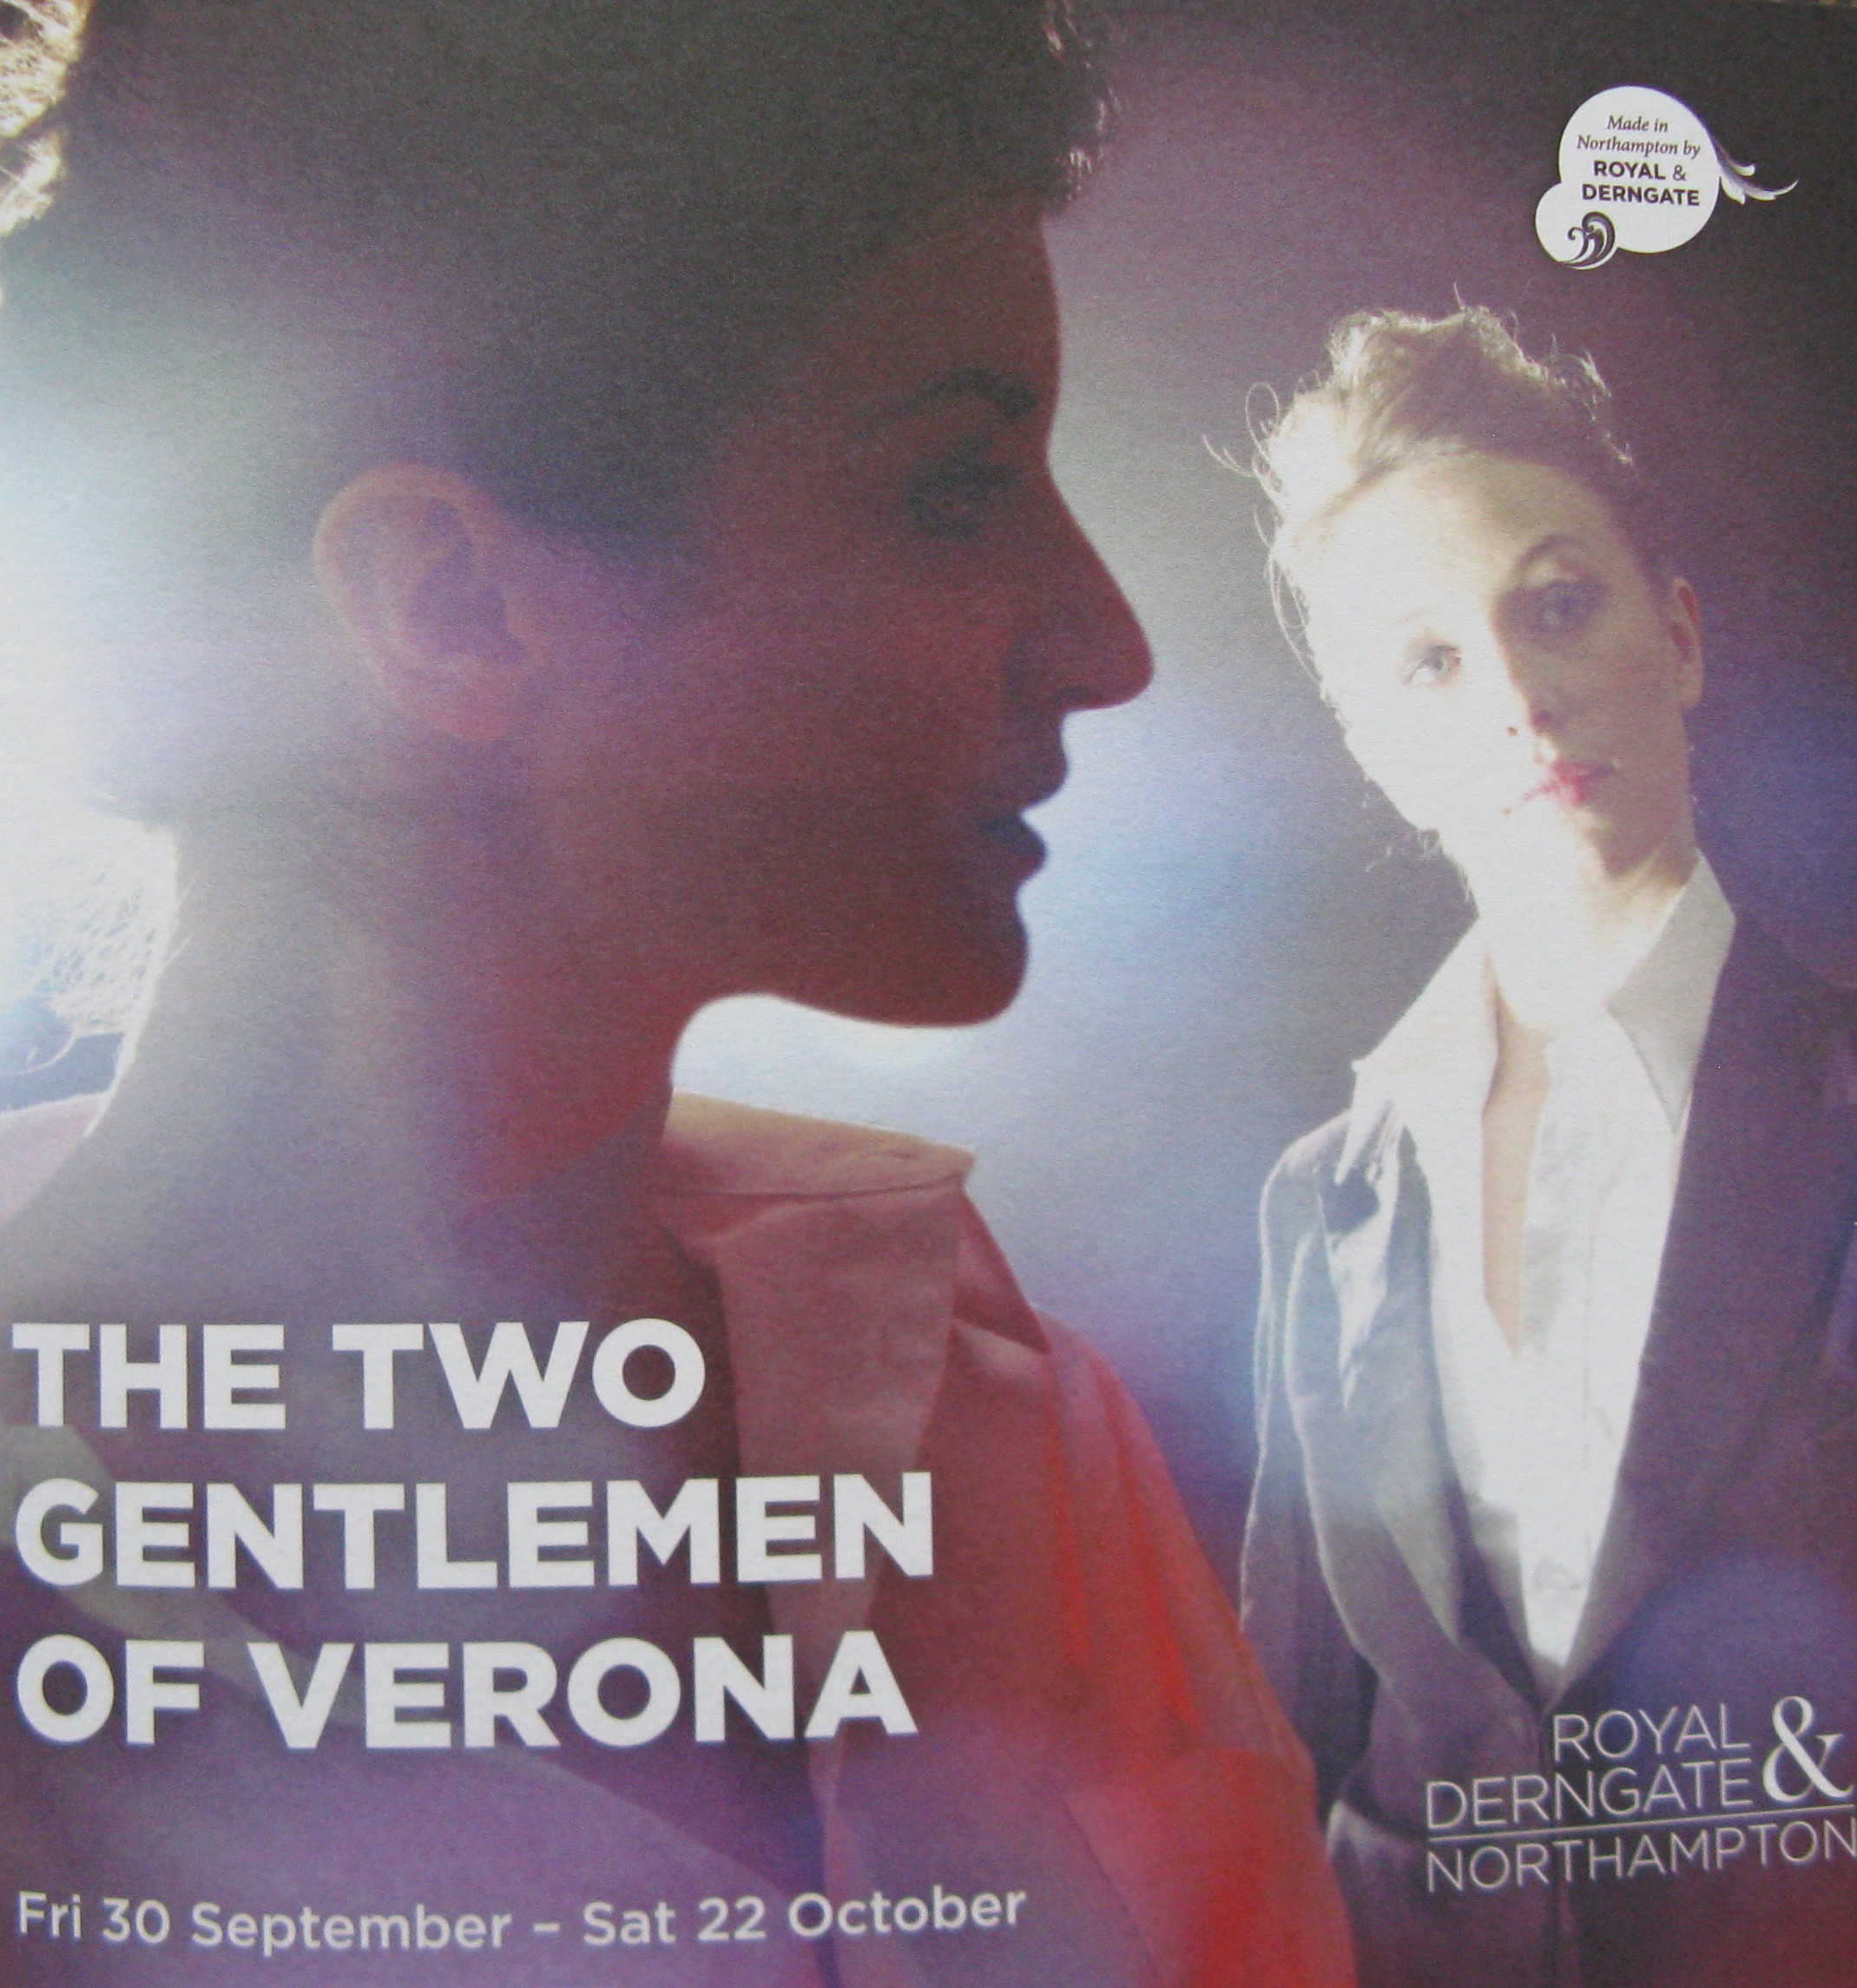 two gentlemen of verona Theatre review: bard's two gentlemen of verona serves up great comic theatre director scott bellis has put together an astonishingly funny, smart, elegant staging in the must-see hit of the summer jerry wasserman more from jerry wasserman published on: july 14, 2017 | last updated: july 14, 2017 11:00 am pdt.